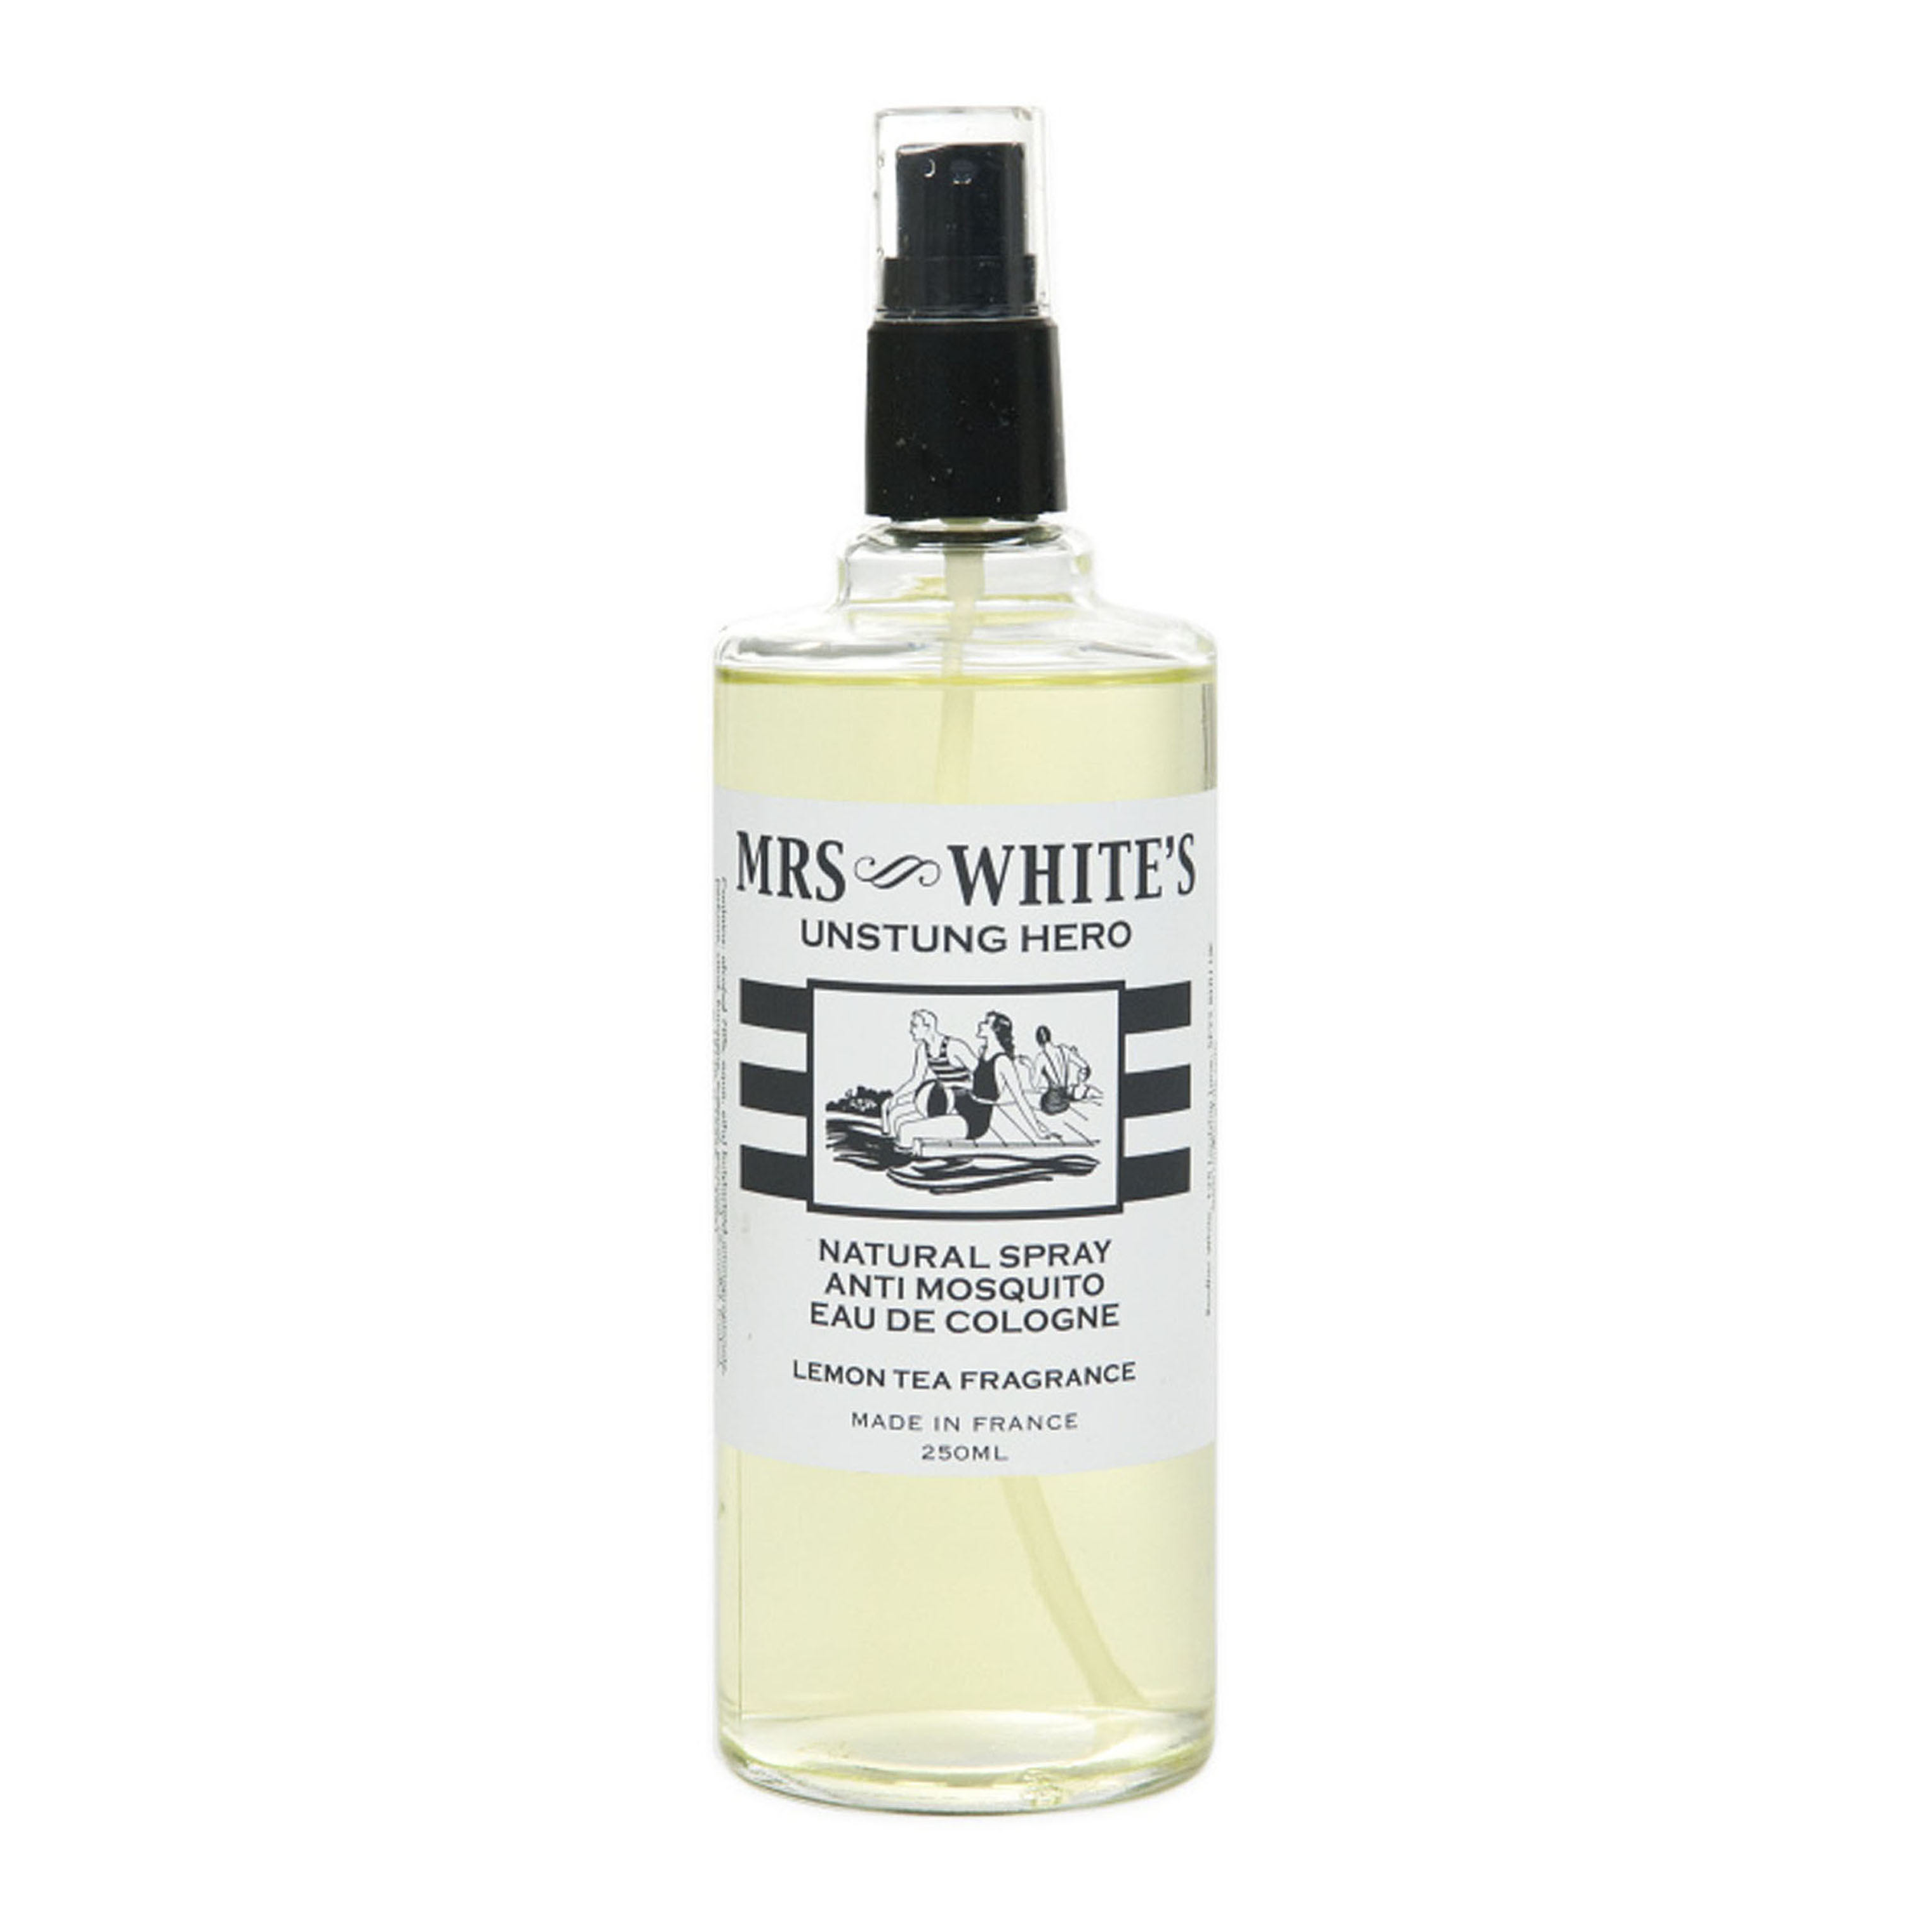 Mrs White's  Unstung Hero Anti Mosquito Eau de Cologne 250 ml